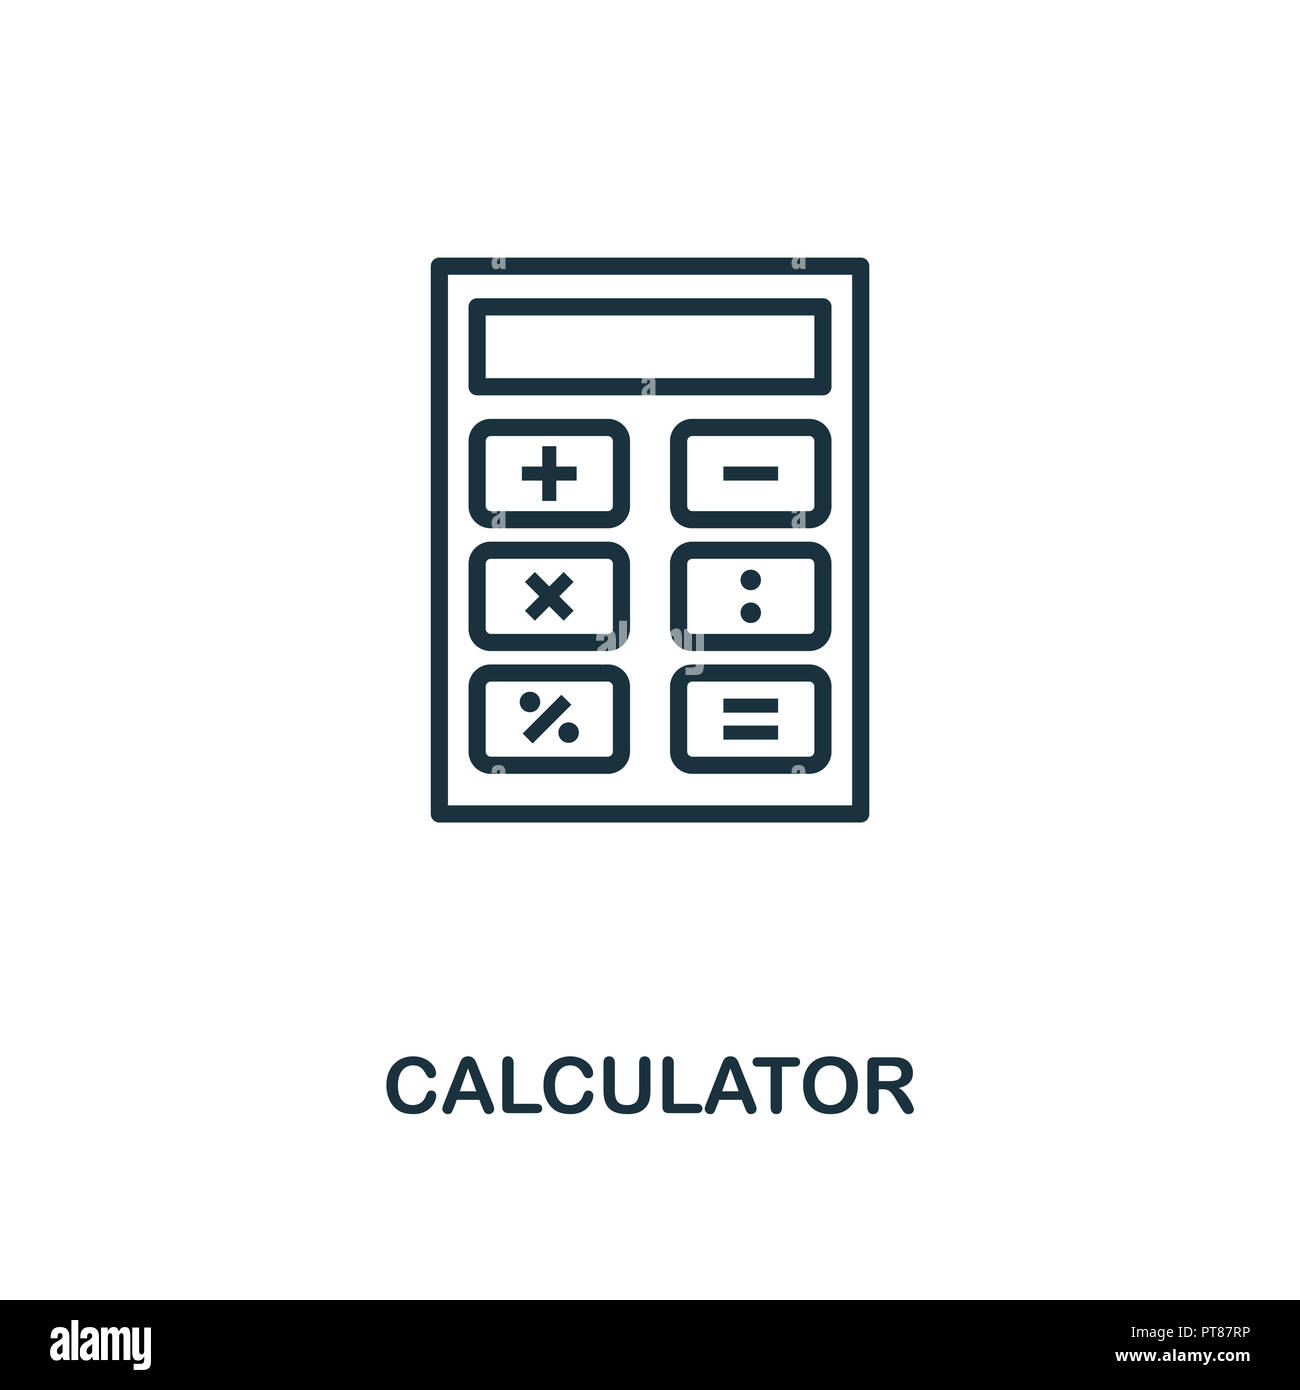 Calculator icon  Monochrome style design from measurement